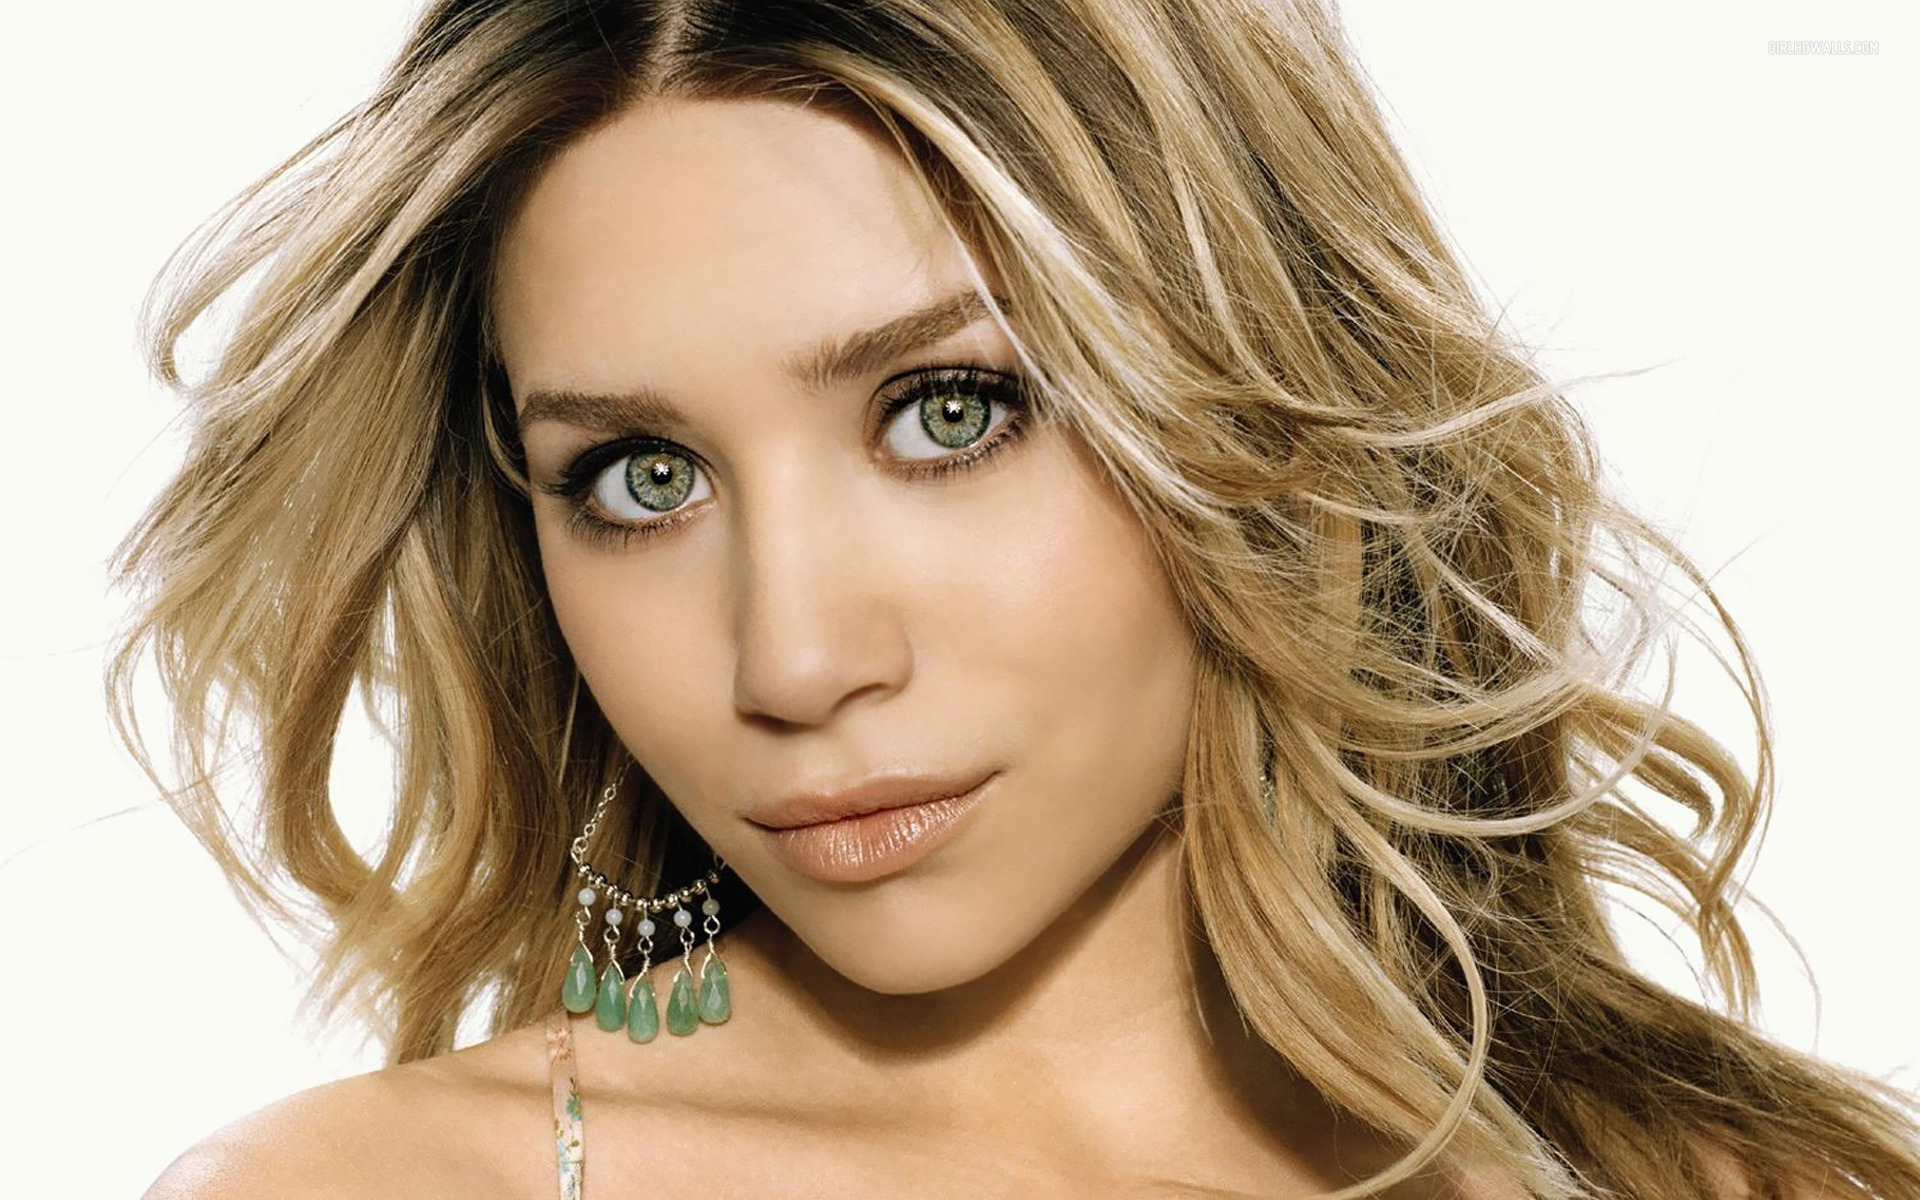 Ashley Olsen hot full hd photo Wallpaper